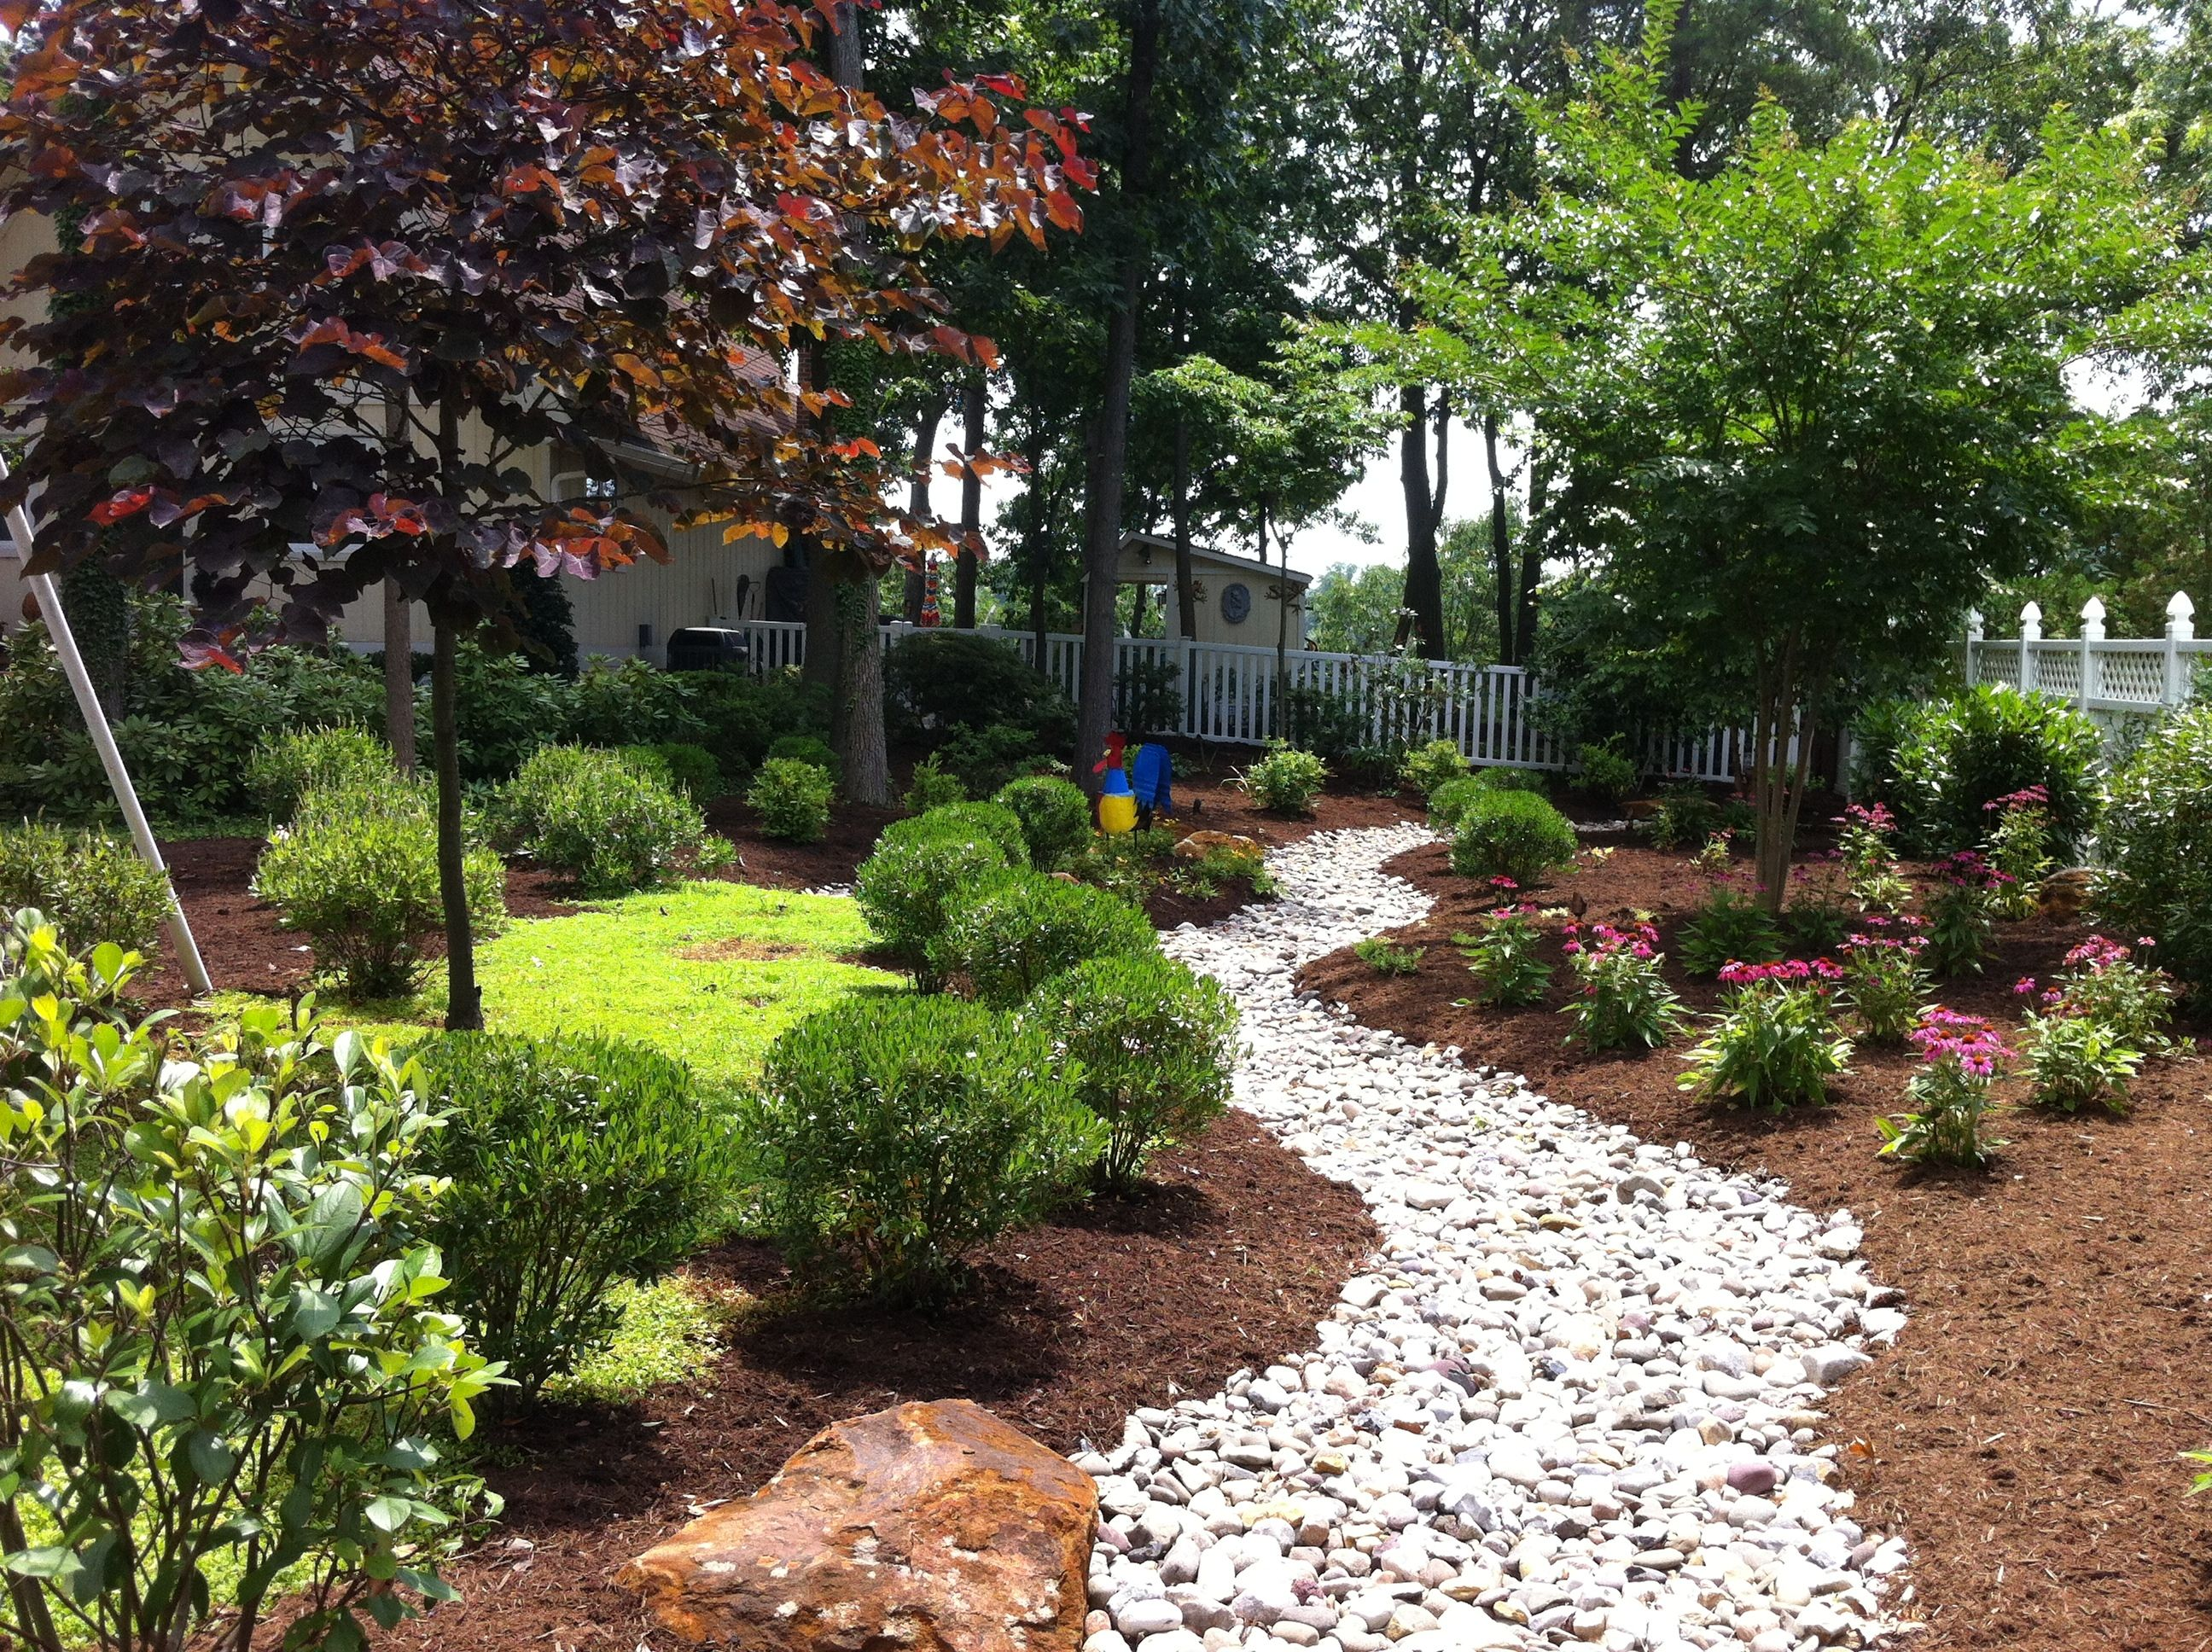 landscaping and hardscaping dry river bed google search - Garden Design Dry River Bed